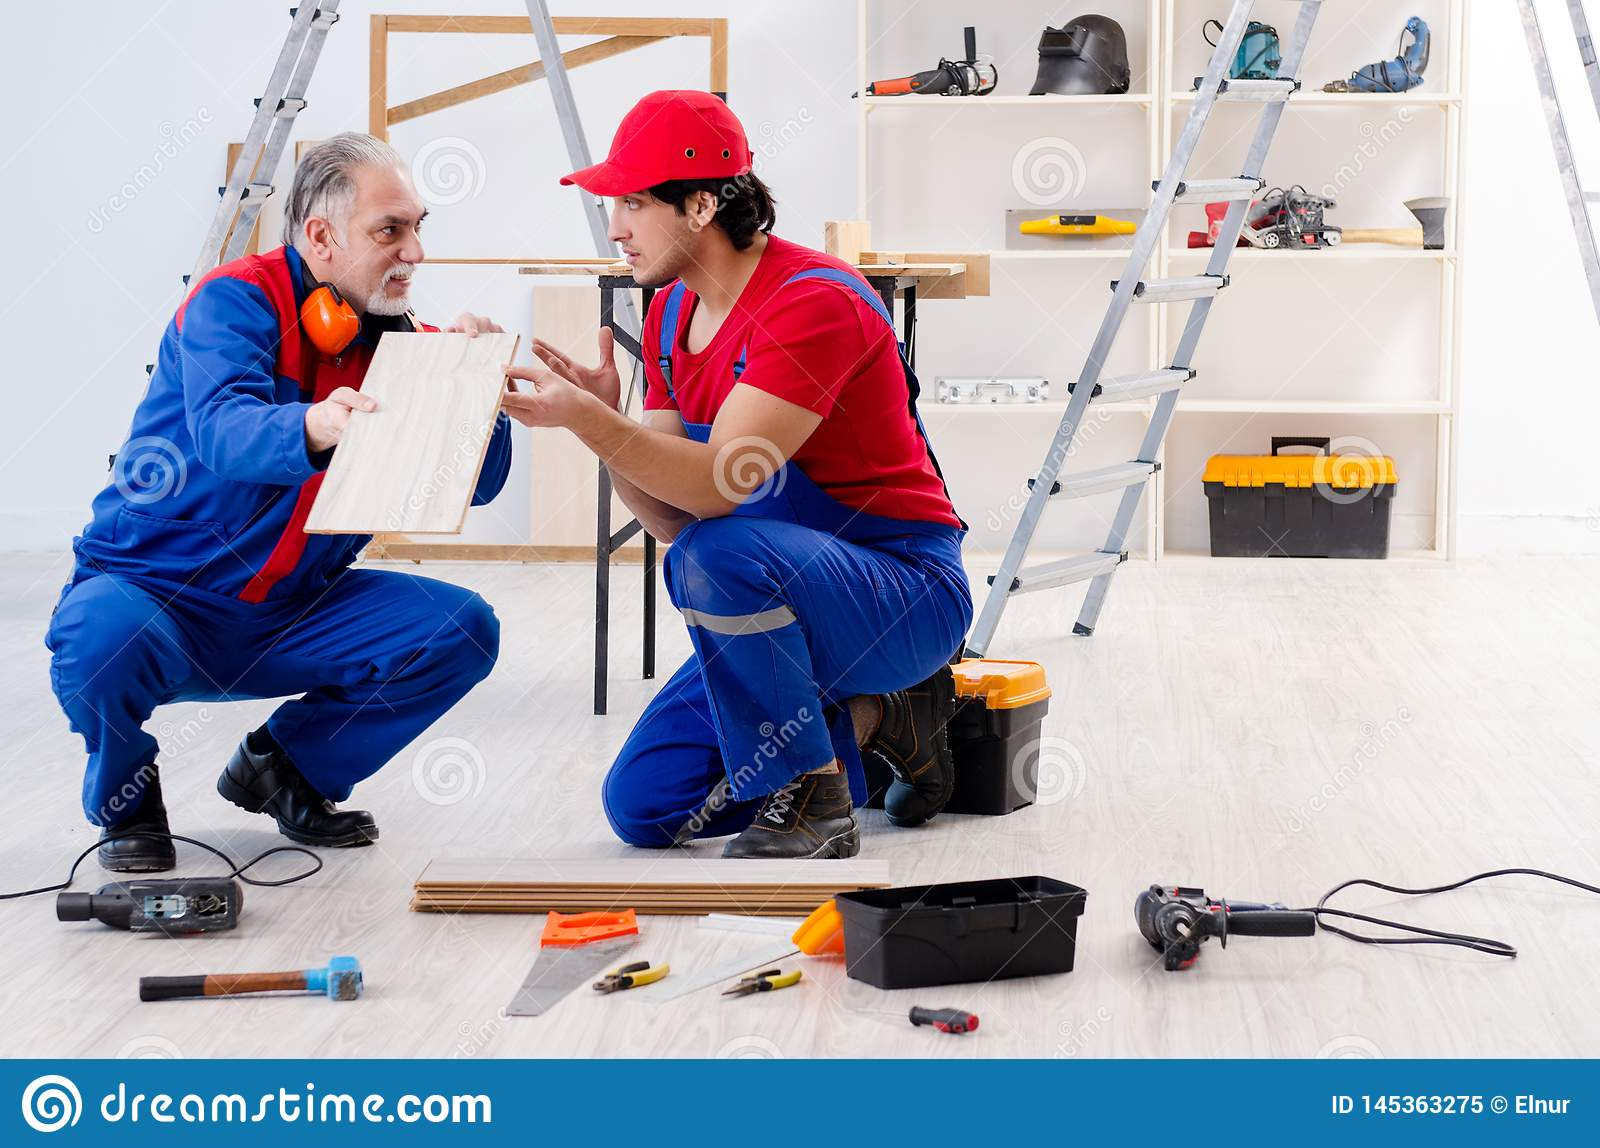 The Two Professional Contractors Laying Flooring At Home Stock